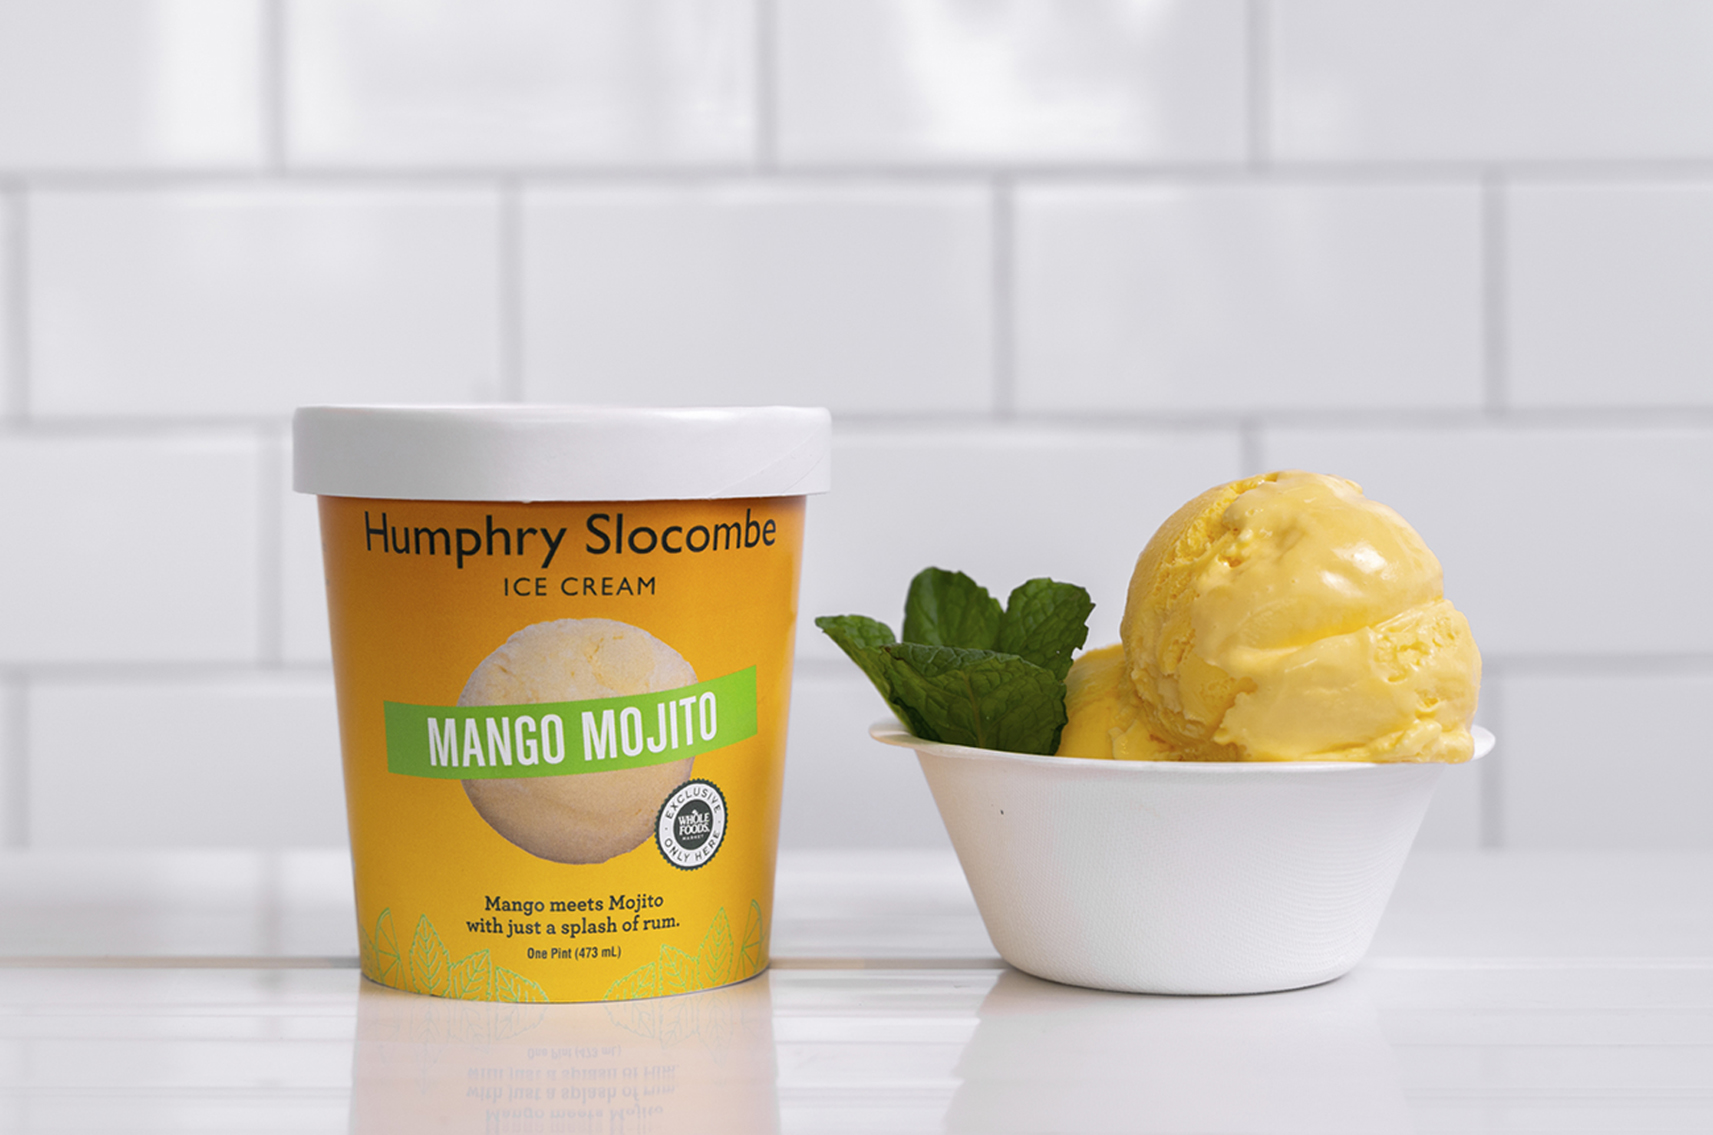 Mango Mojito icecream pint and scoop in bowl with mint garnish